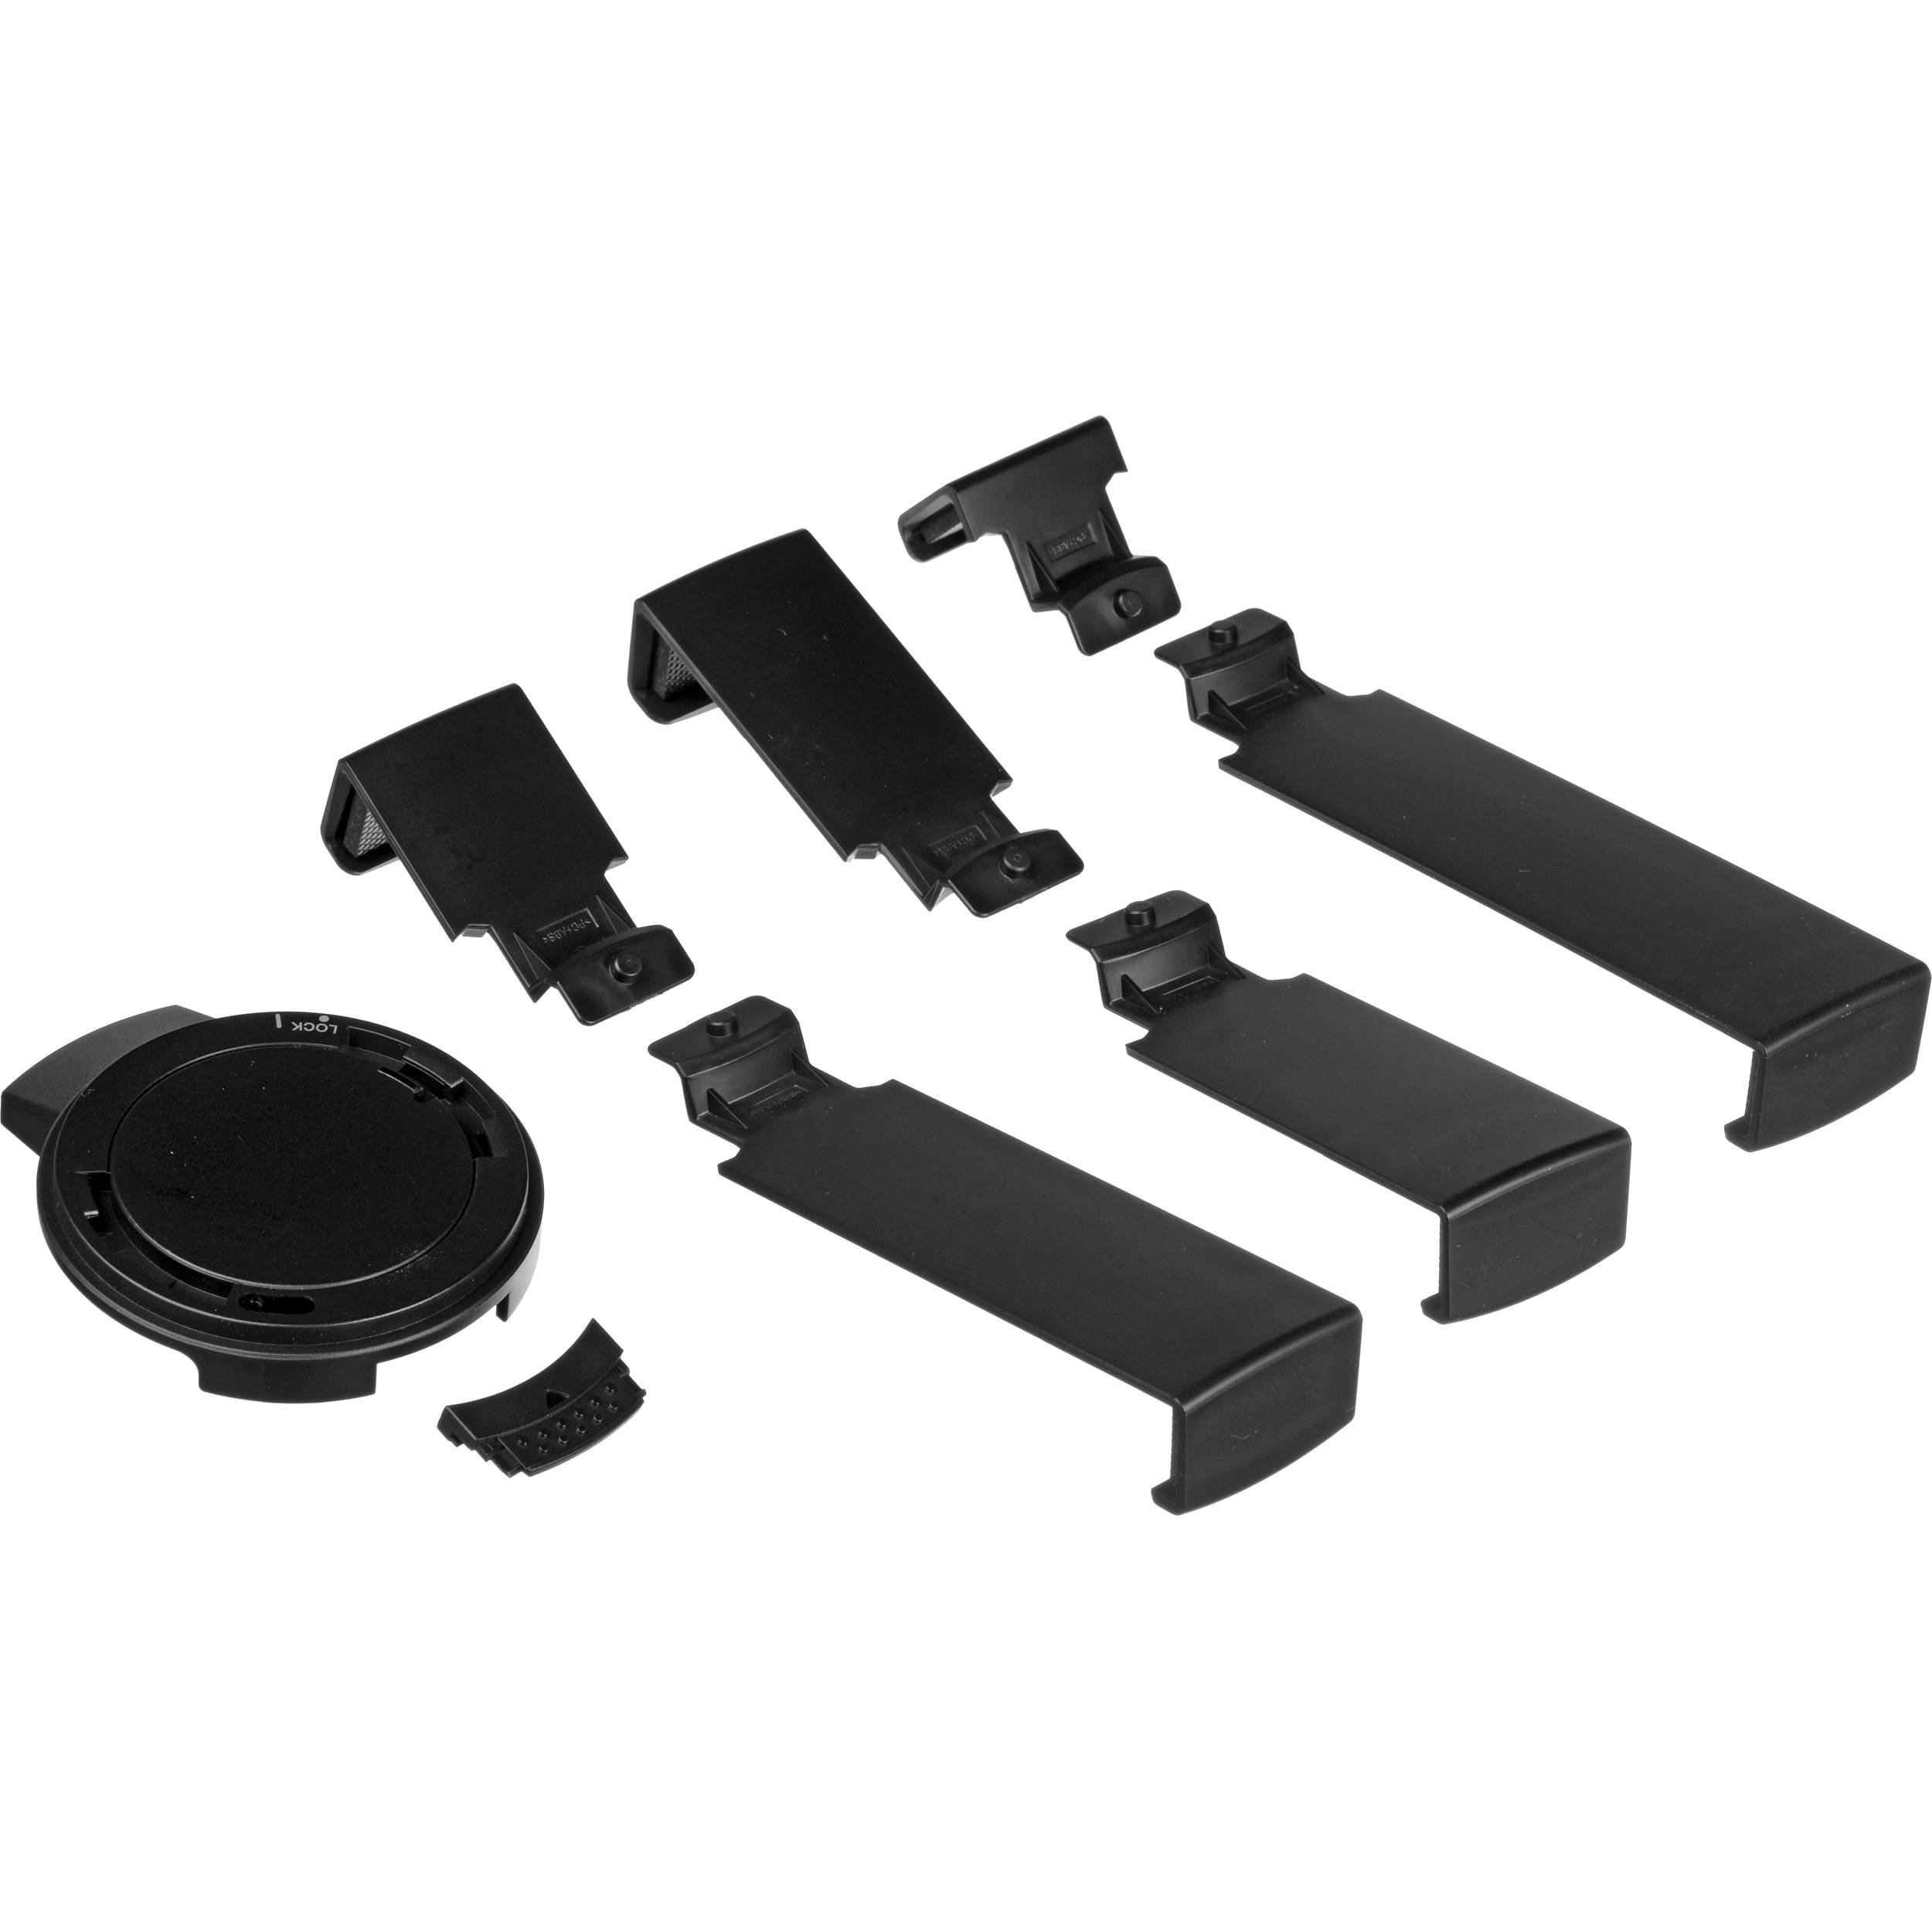 Sony SPA-TA1 Clip-On Tablet Attachment for DSC-QX10 and DSC-